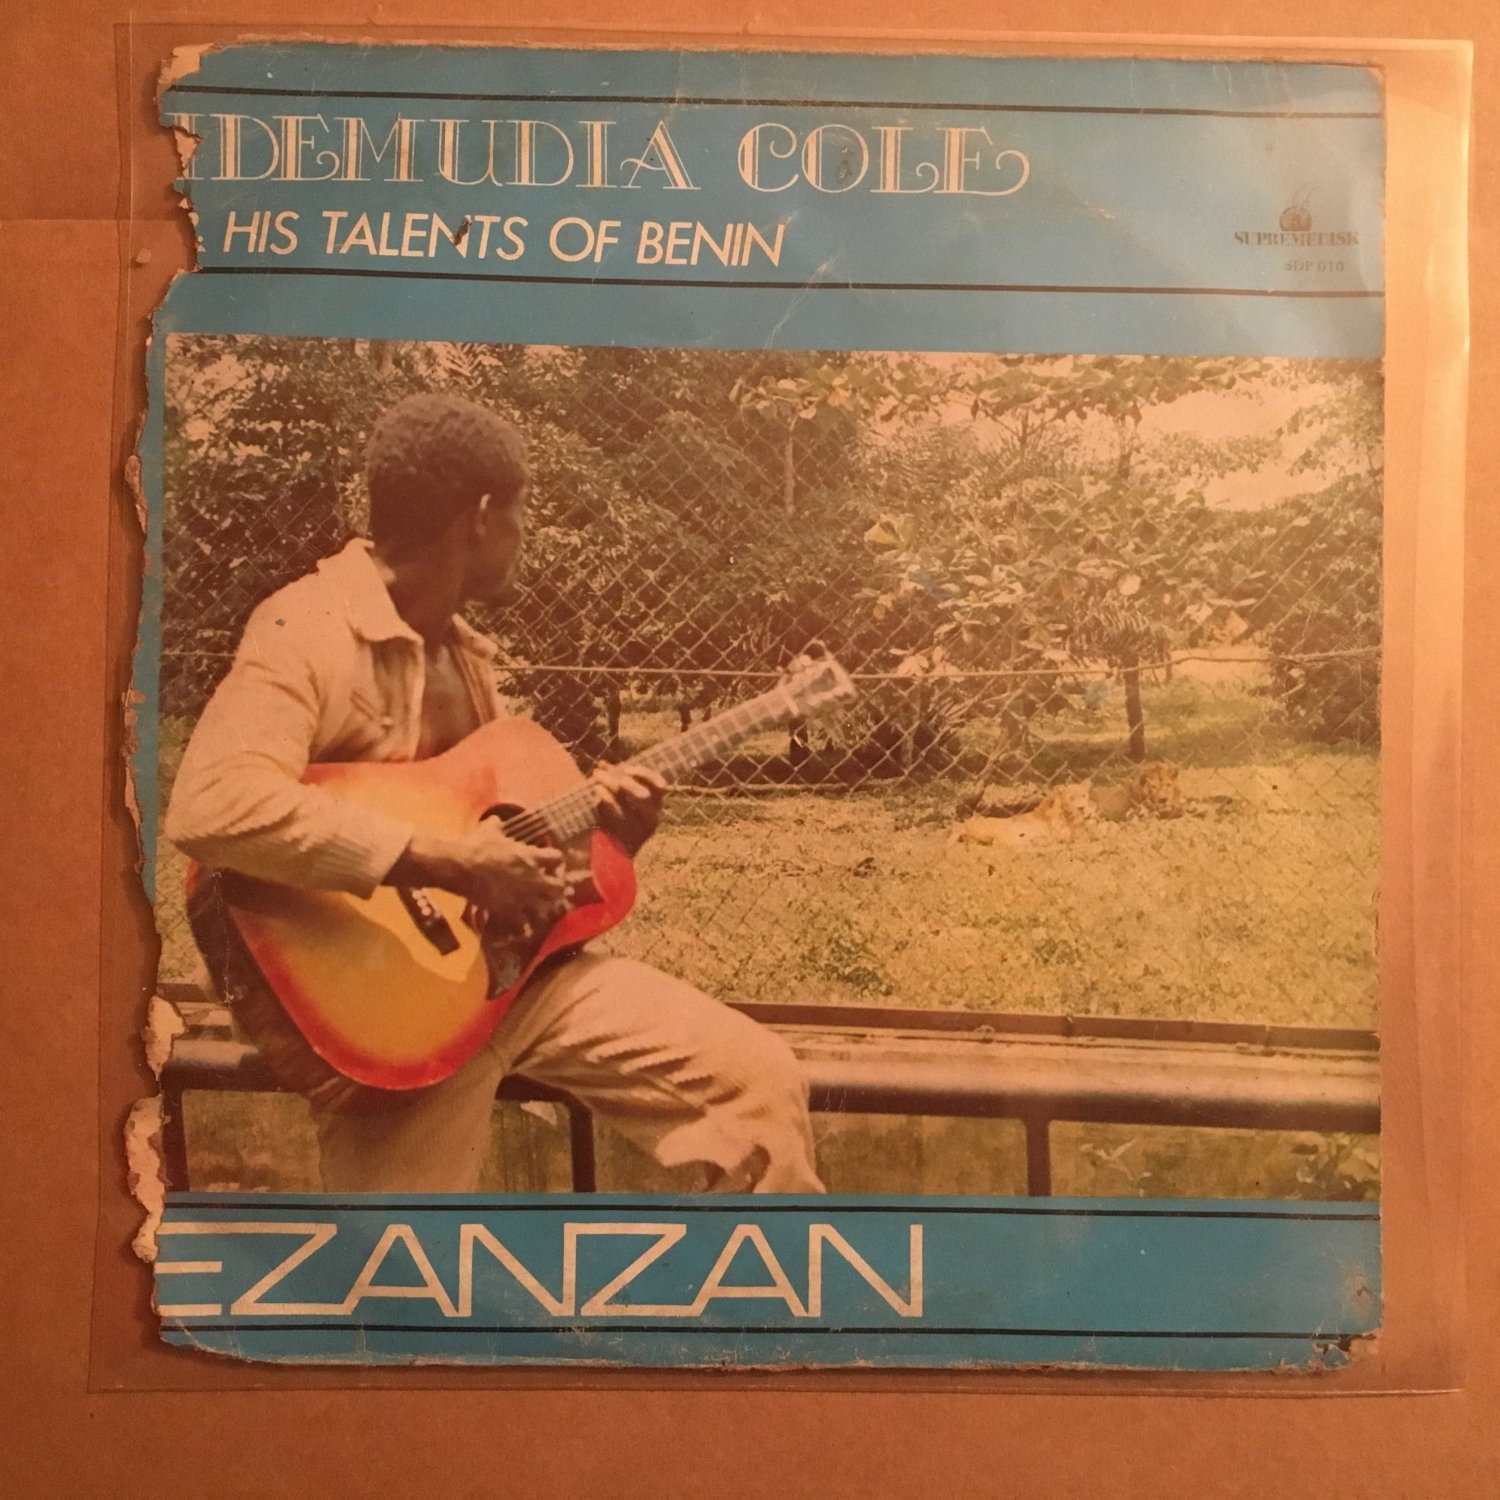 IDEMUDIA COLE & TALENTS OF BENIN LP ezanzan NIGERIA EDO FUNK HIGHLIFE mp3 LISTEN